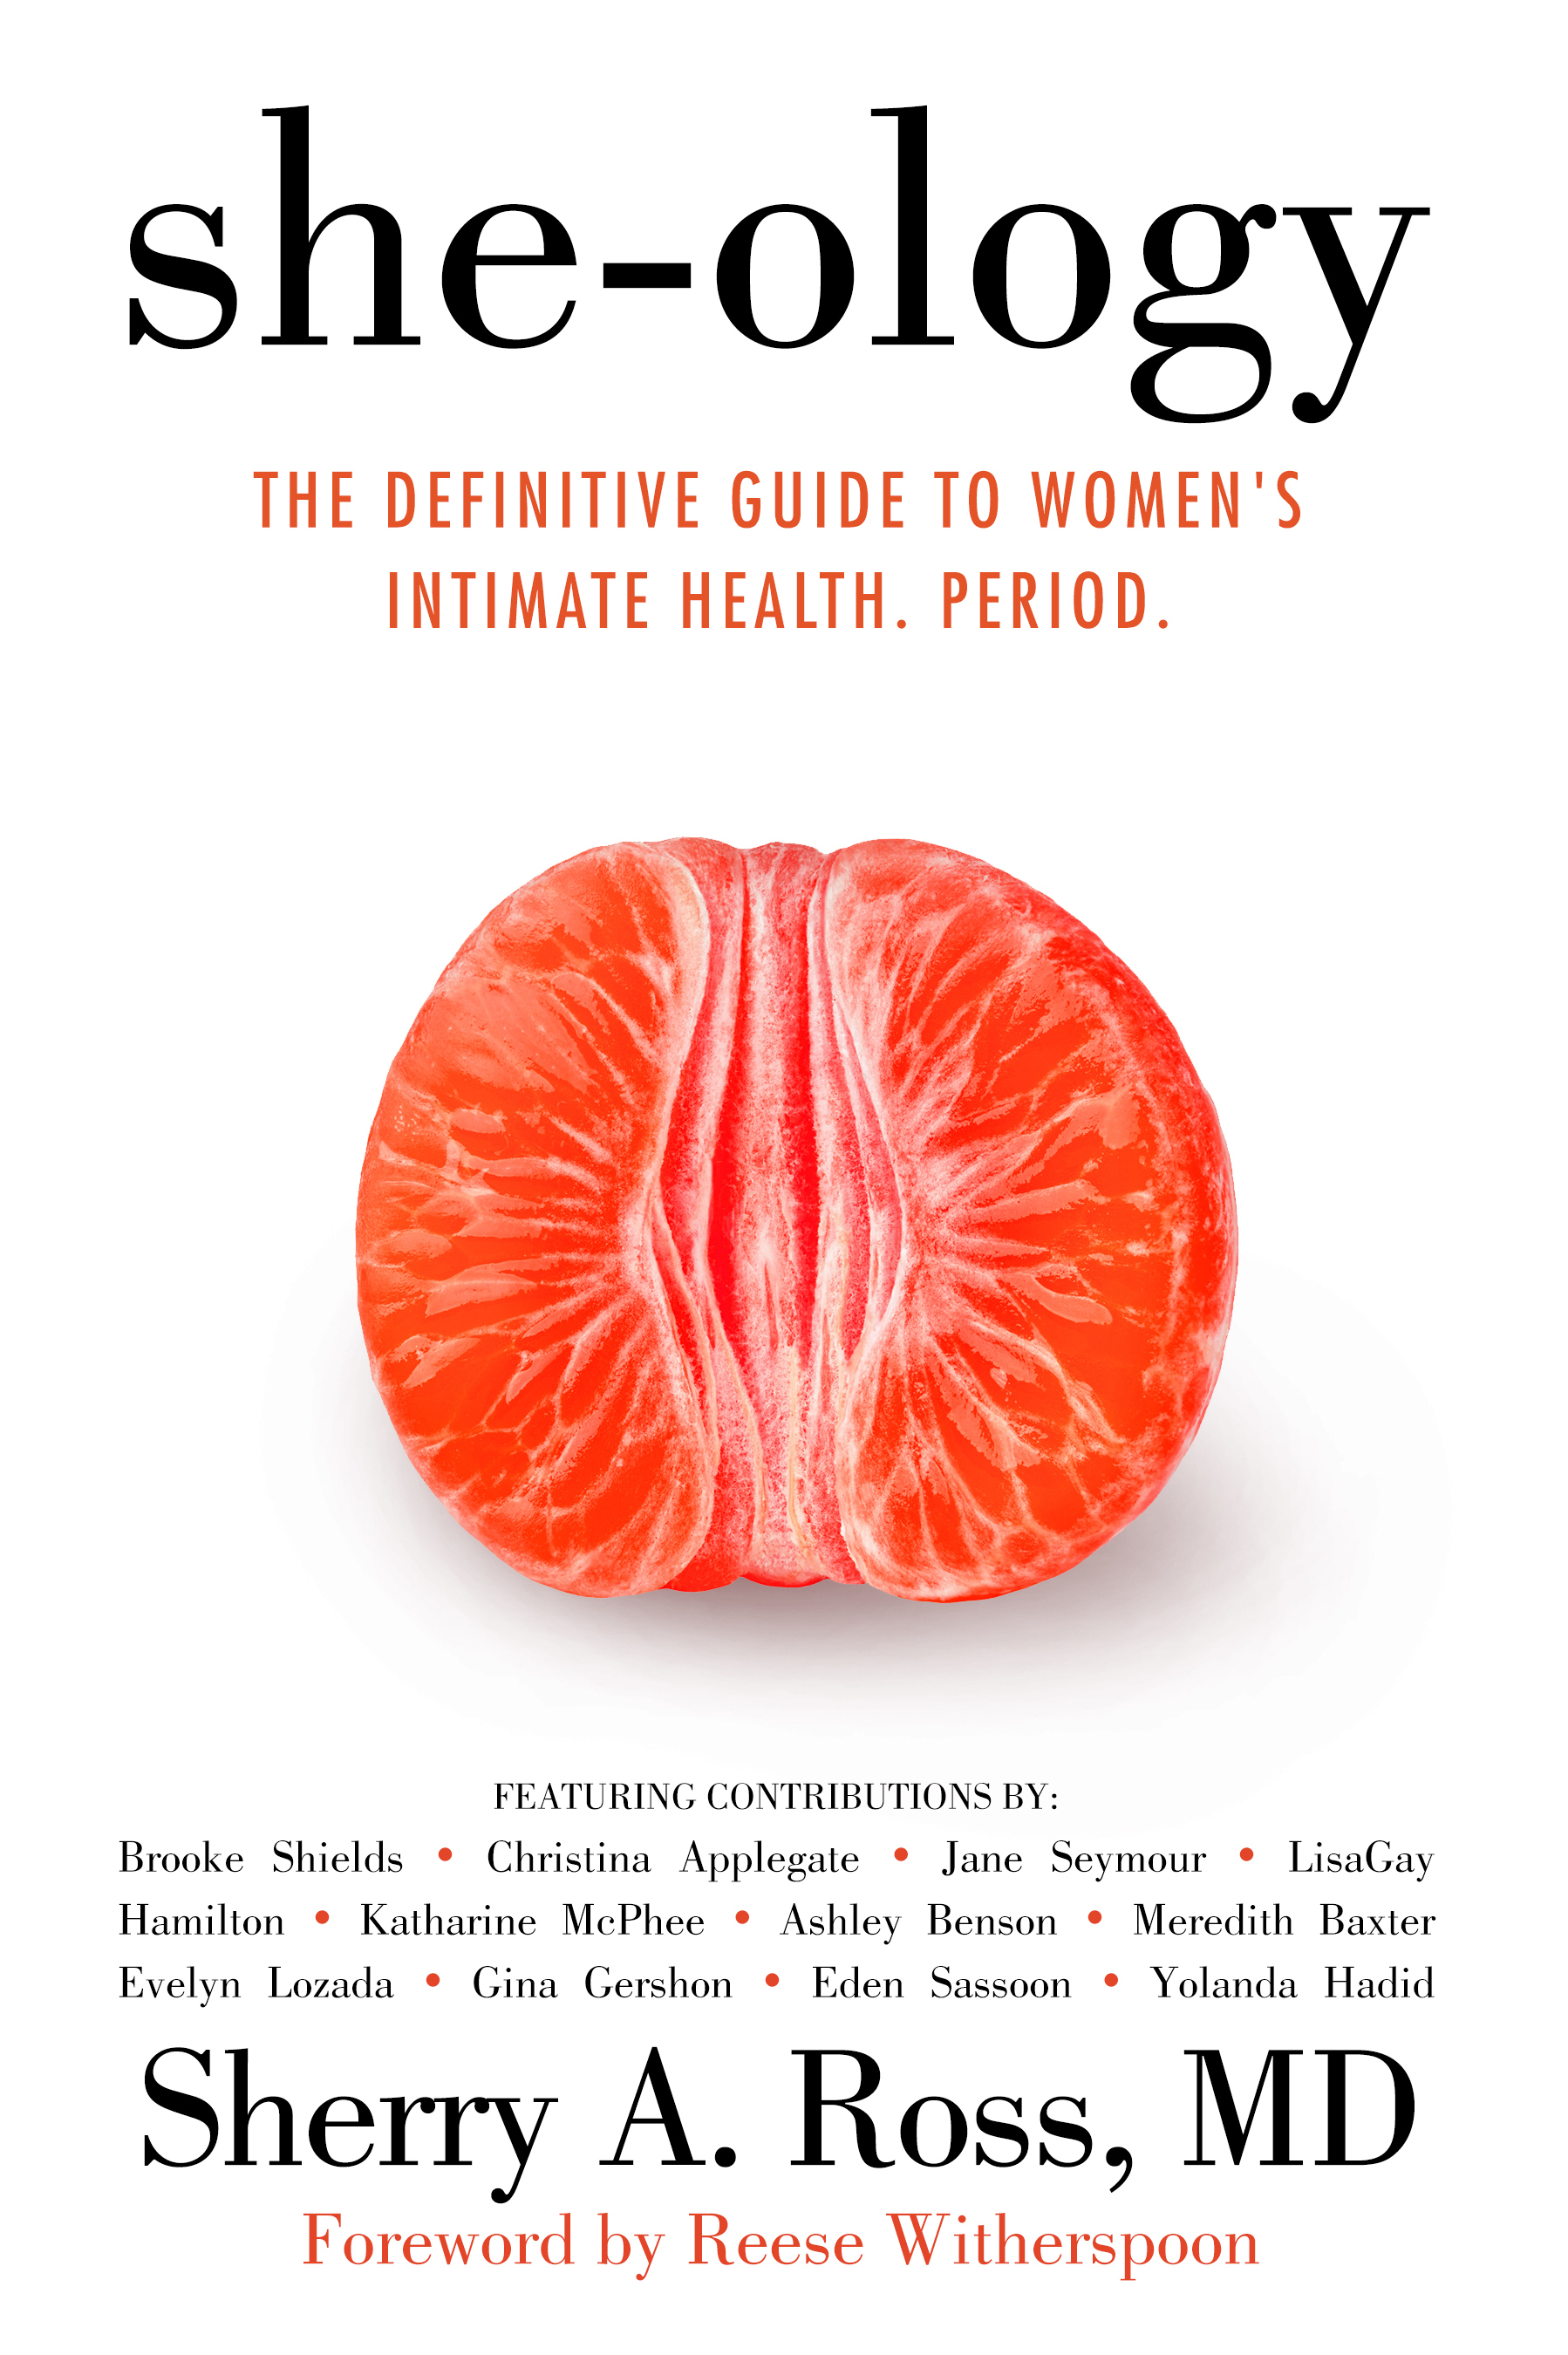 She-ology The Definitive Guide to Women's Intimate Health